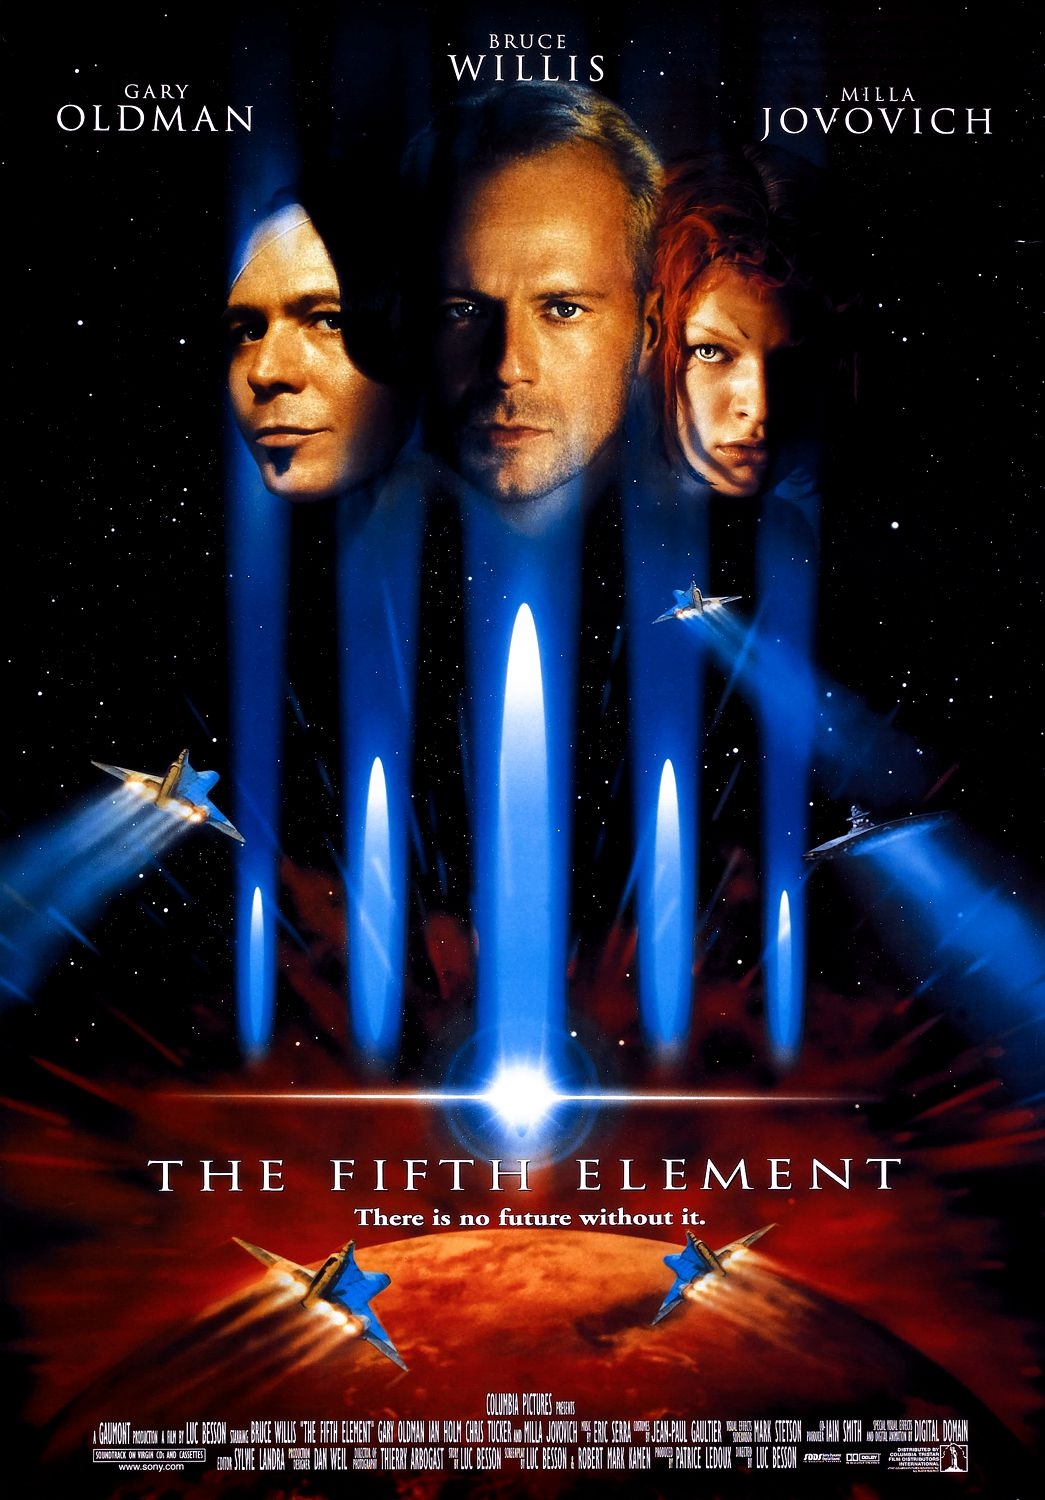 The Fifth Element (1997) - IMDb